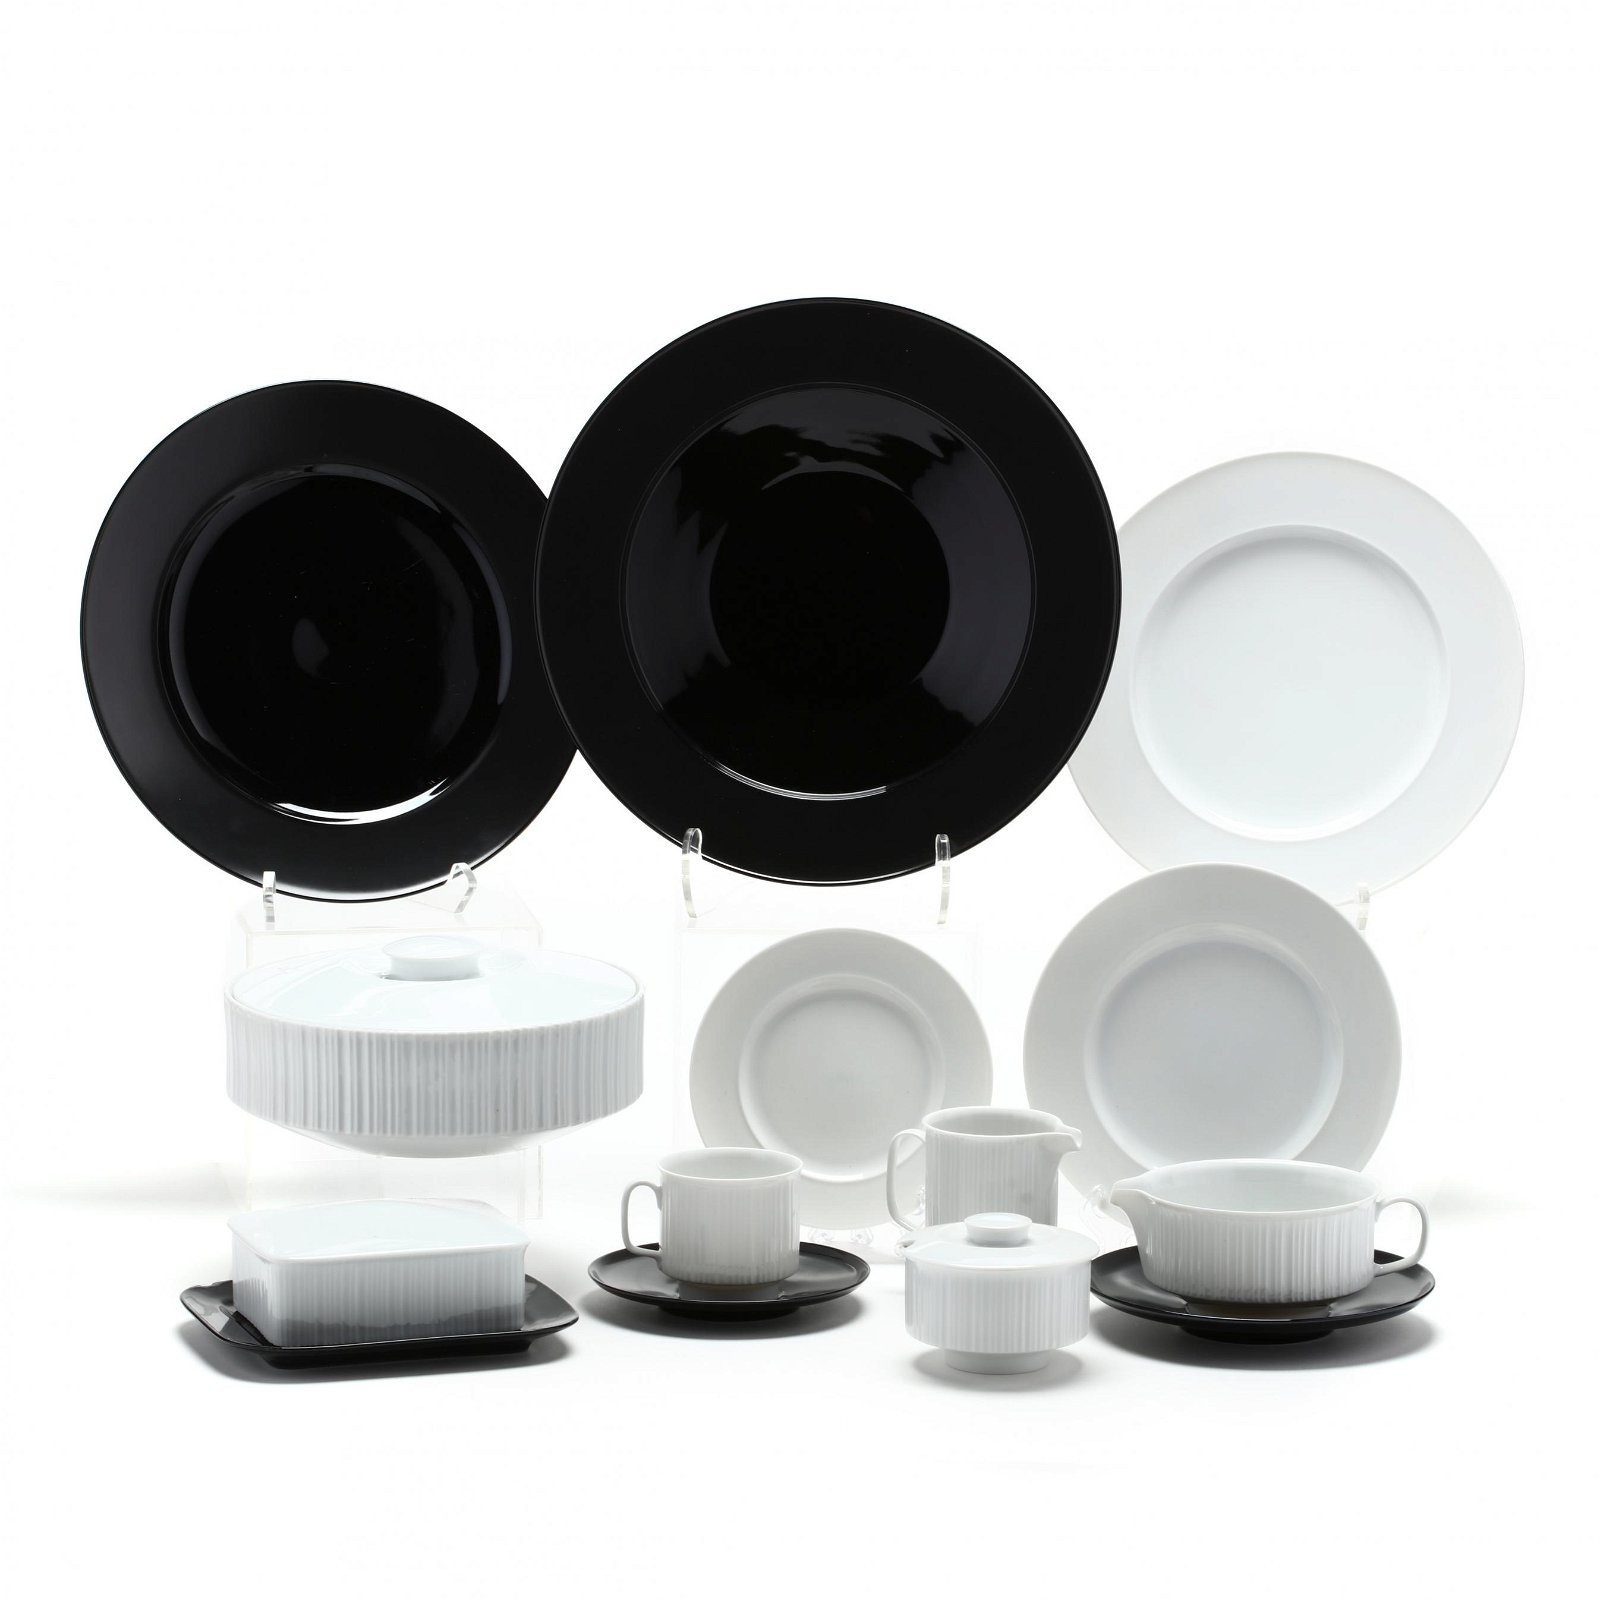 (101) Pieces of Rosenthal Studio Line, Mixed Set of